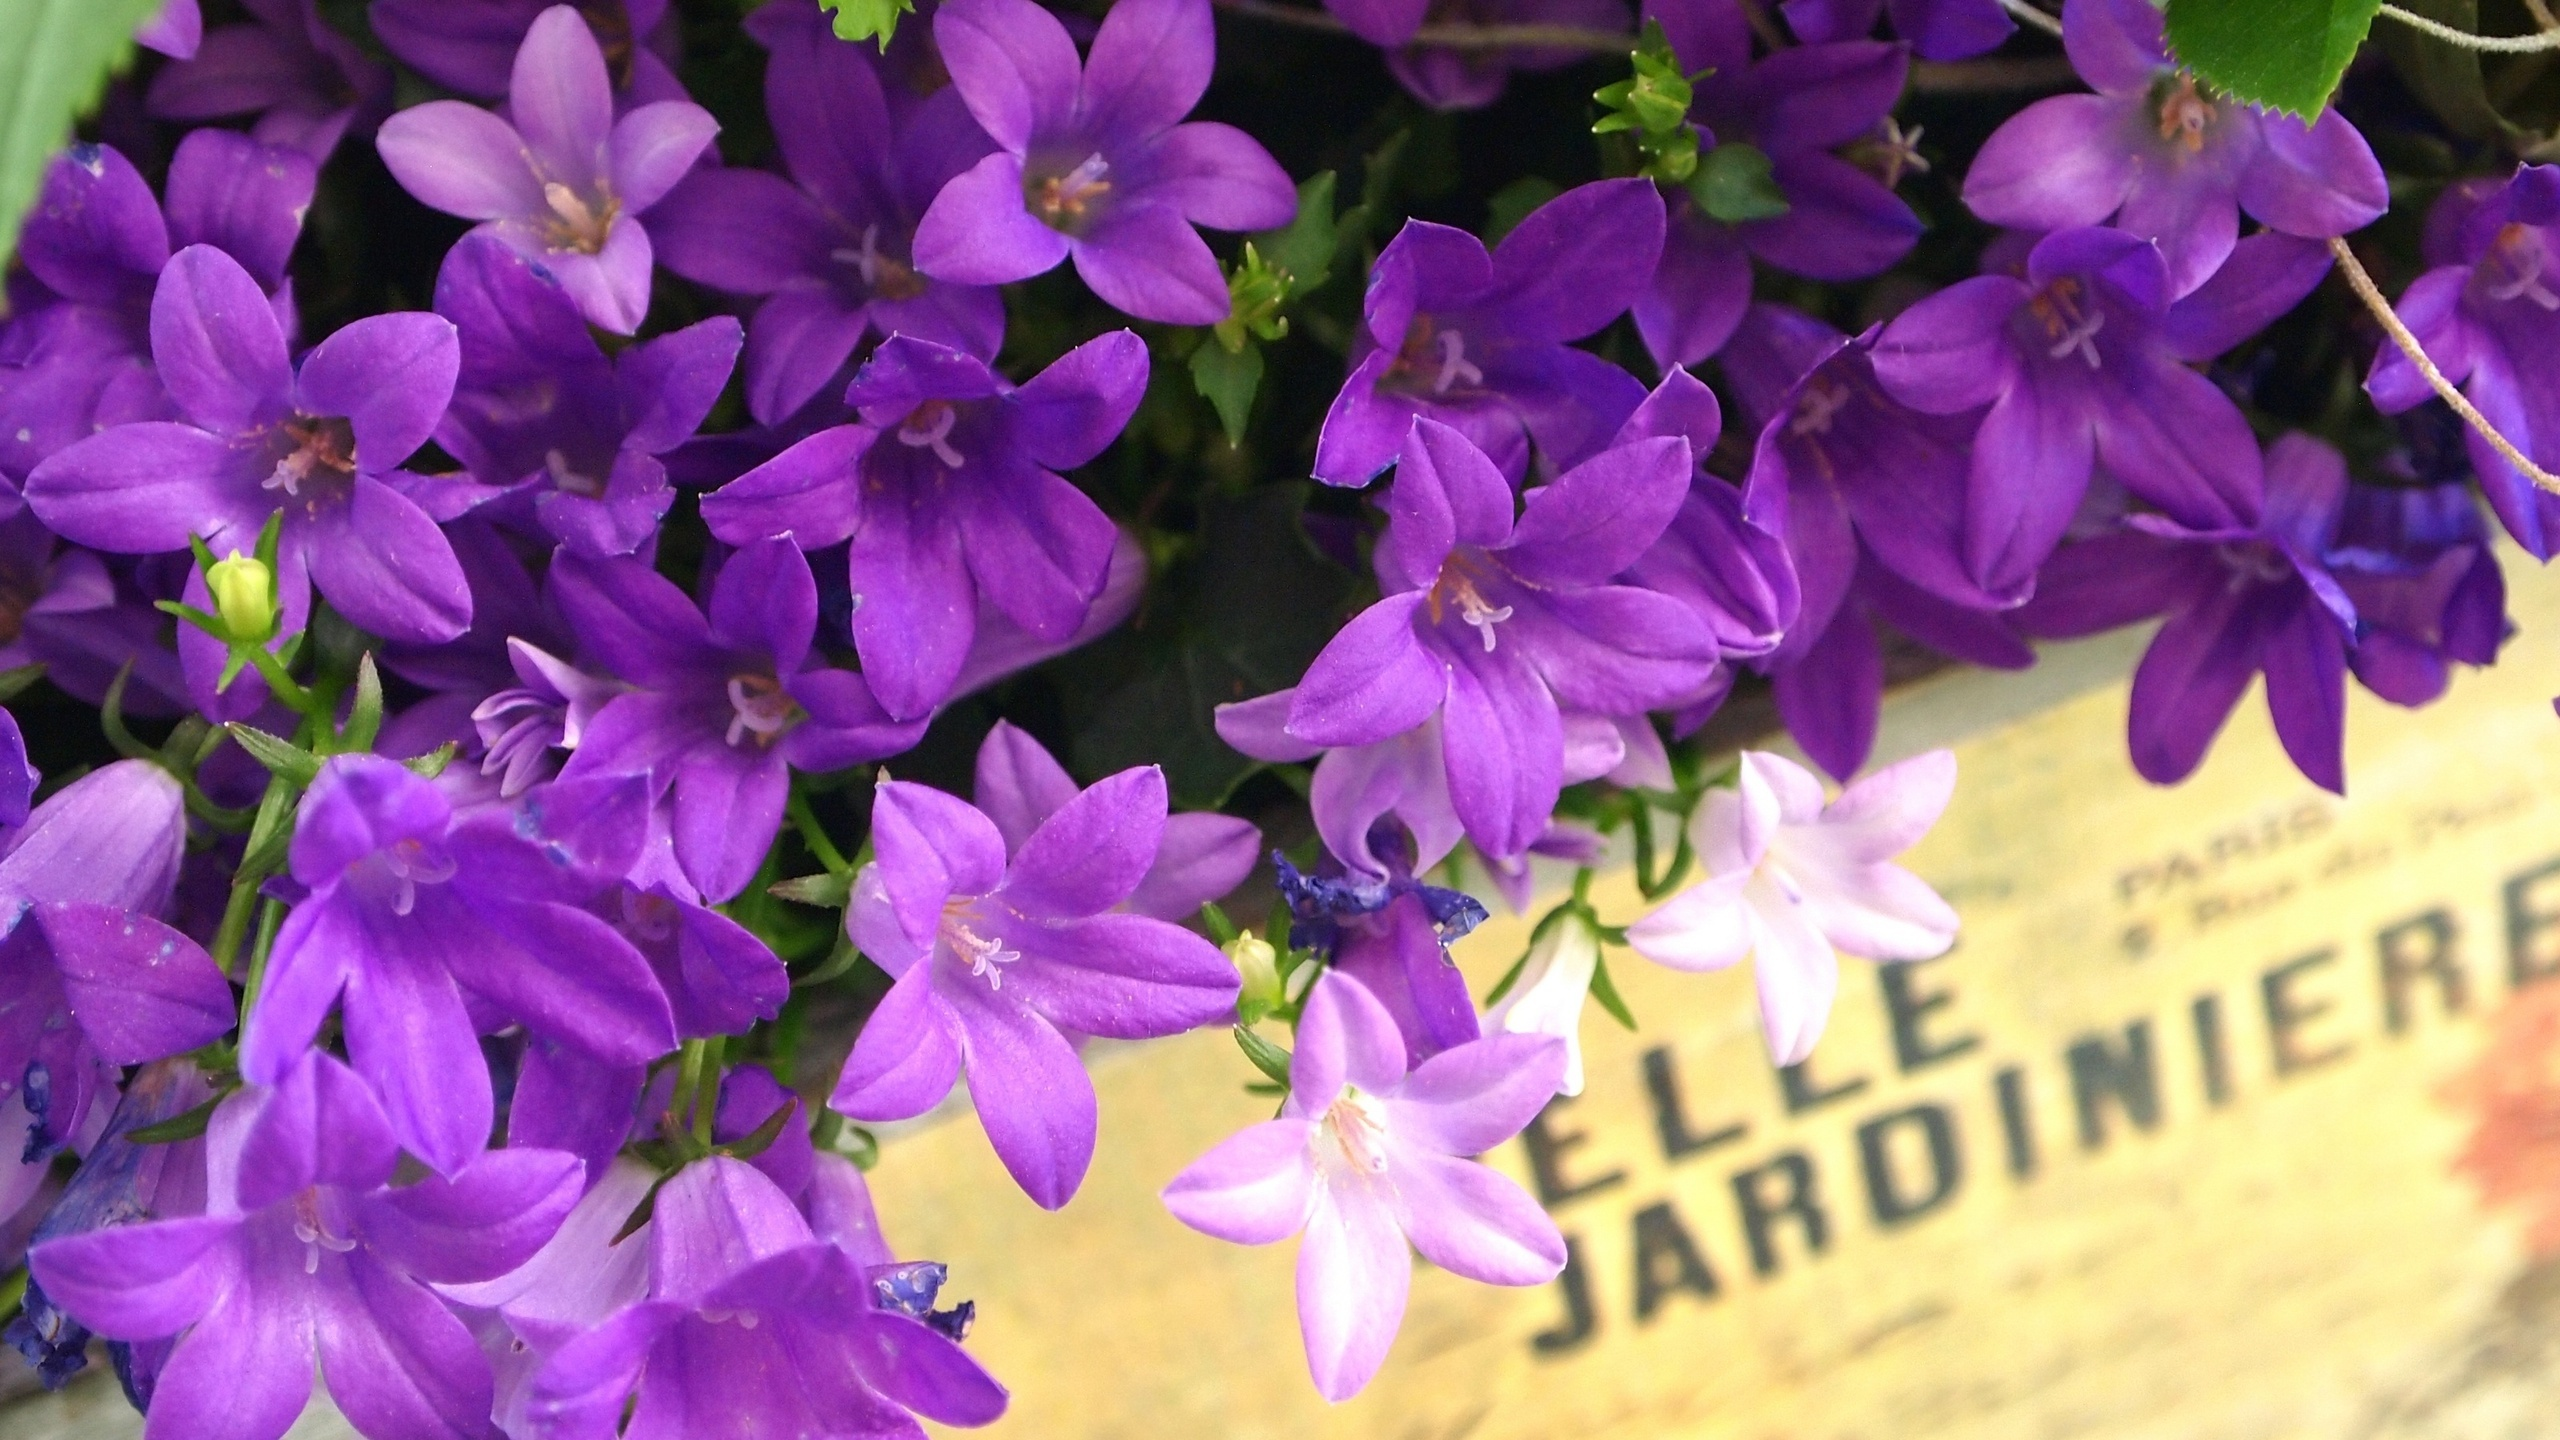 lavender flowers wallpapers 2560x1440 - photo #38